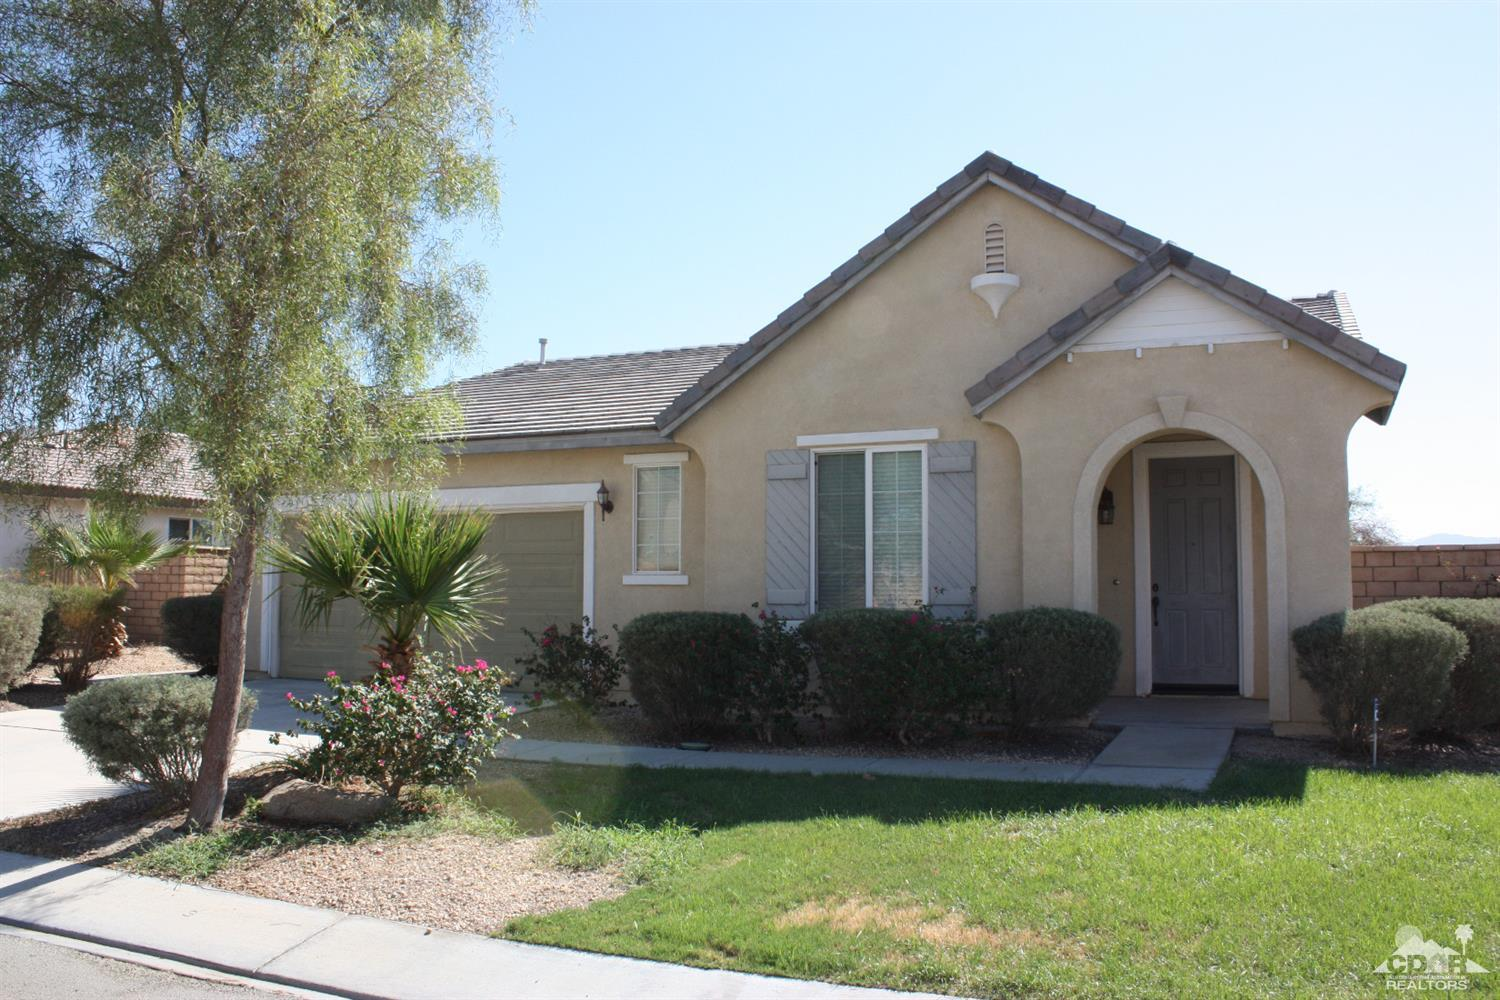 37868 Medway St, Indio, CA 92203